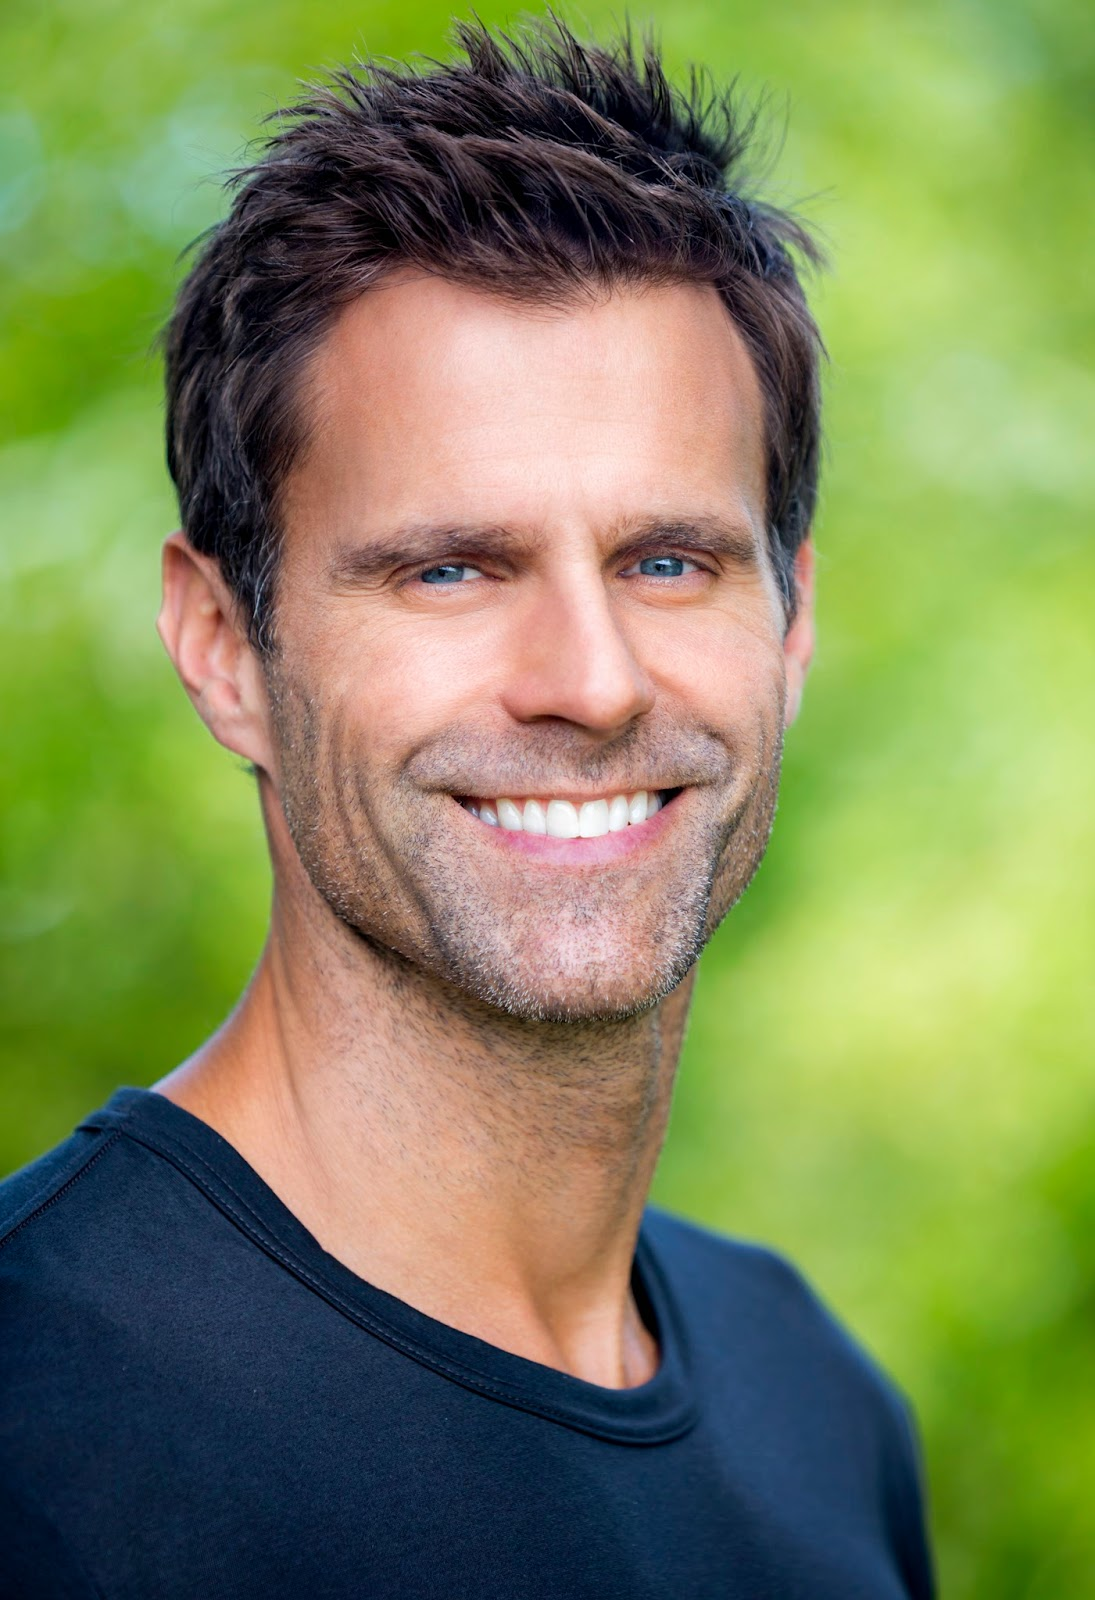 celebrity extra cameron mathison goes undercover in along